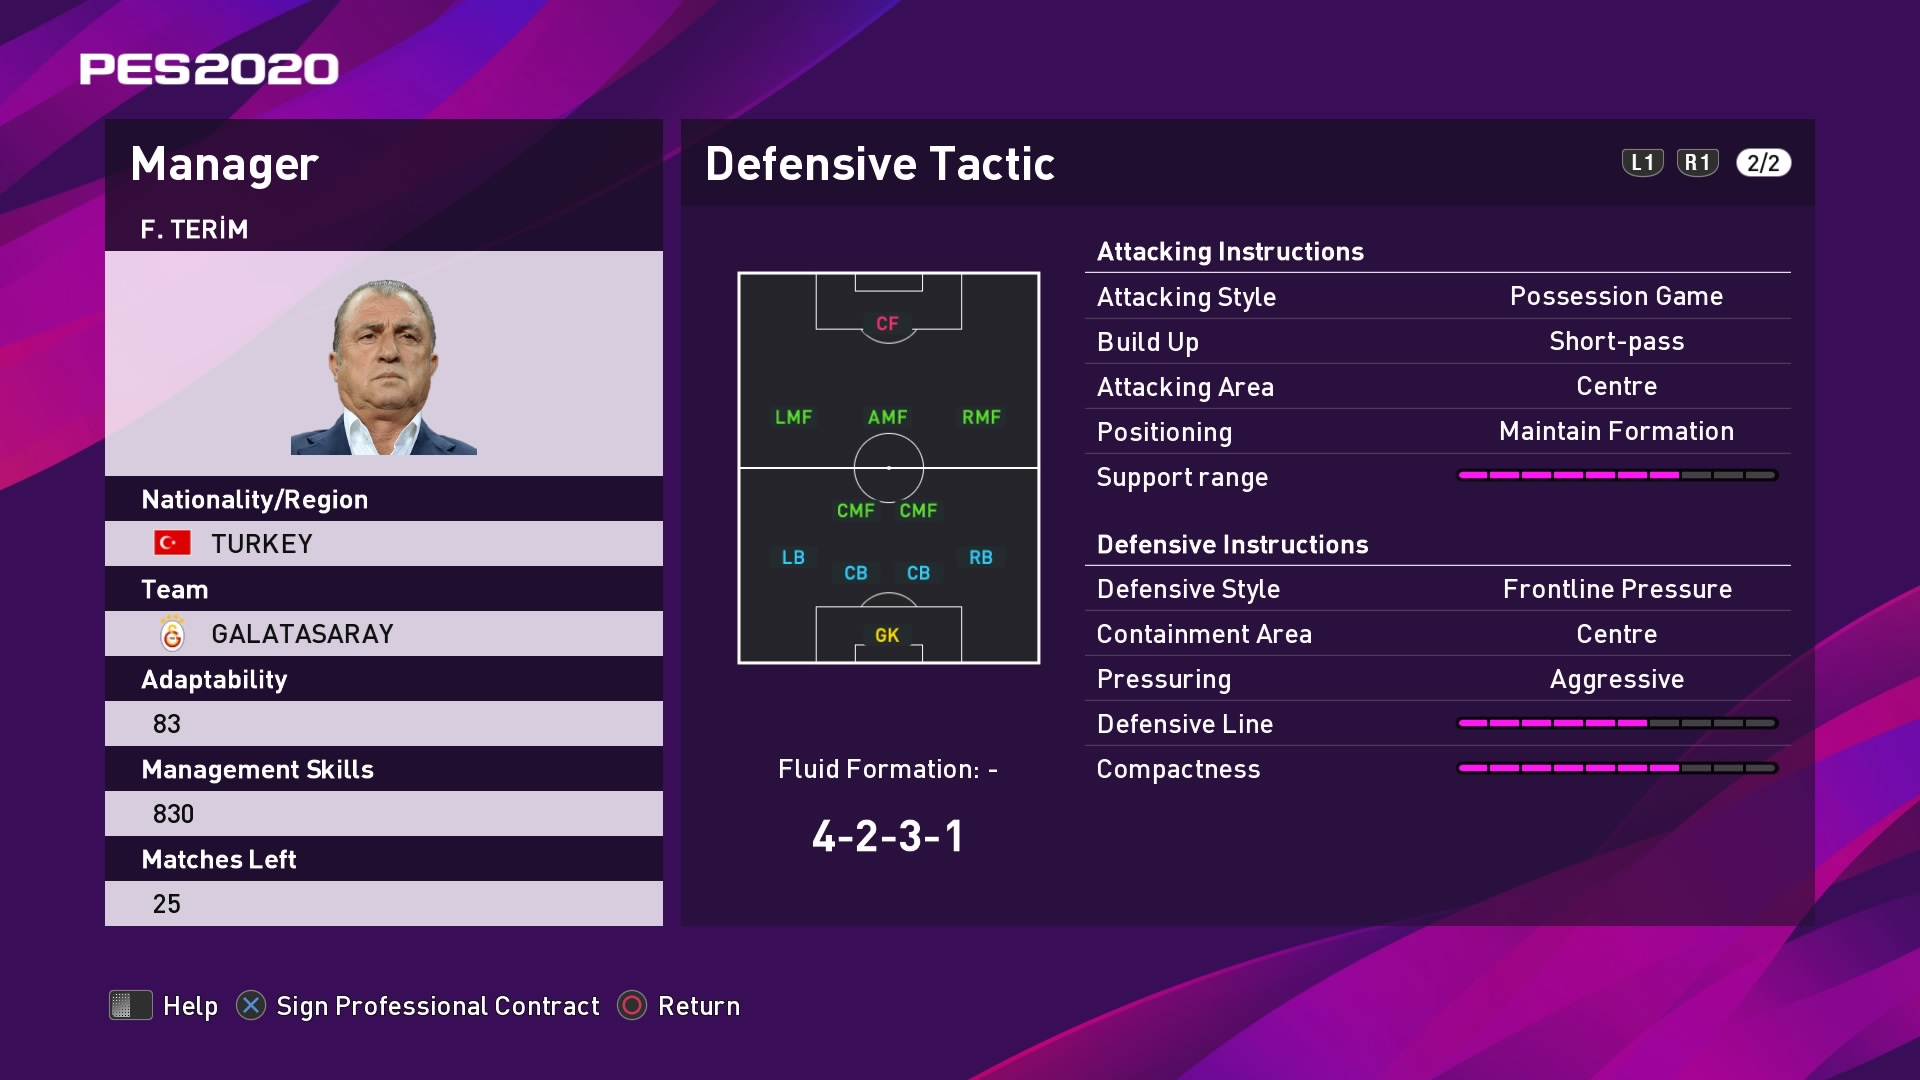 F. Terim (3) (Fatih Terim) Defensive Tactic in PES 2020 myClub